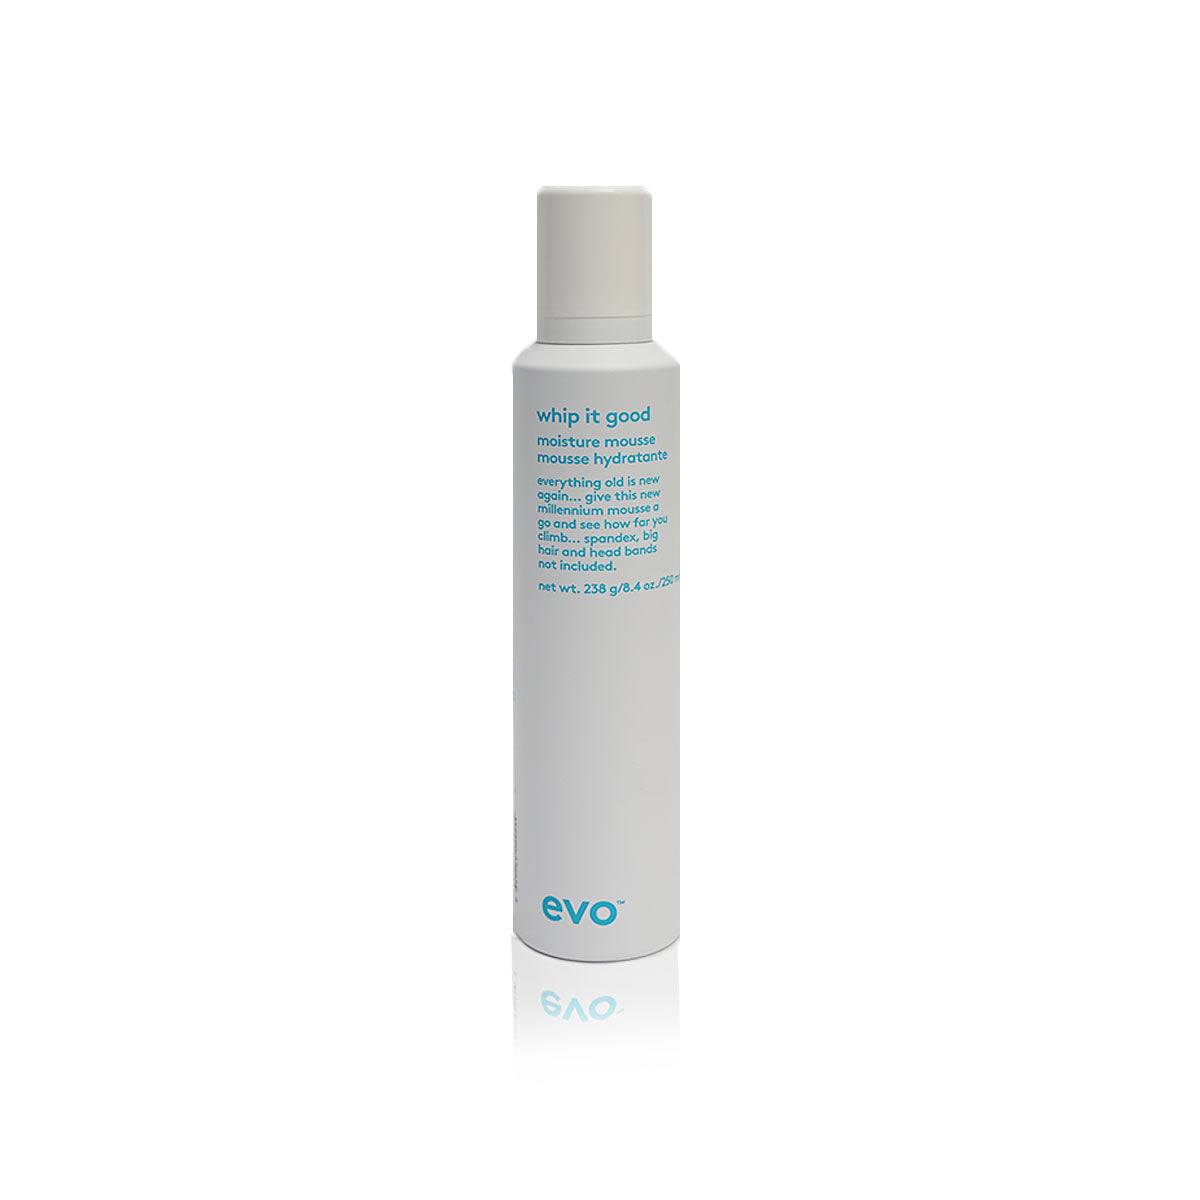 Evo whip it good moisture mousse Vegan,without sulfates, parabens or gluten - Case of 3 bottles 250ml / 8.4oz (New)